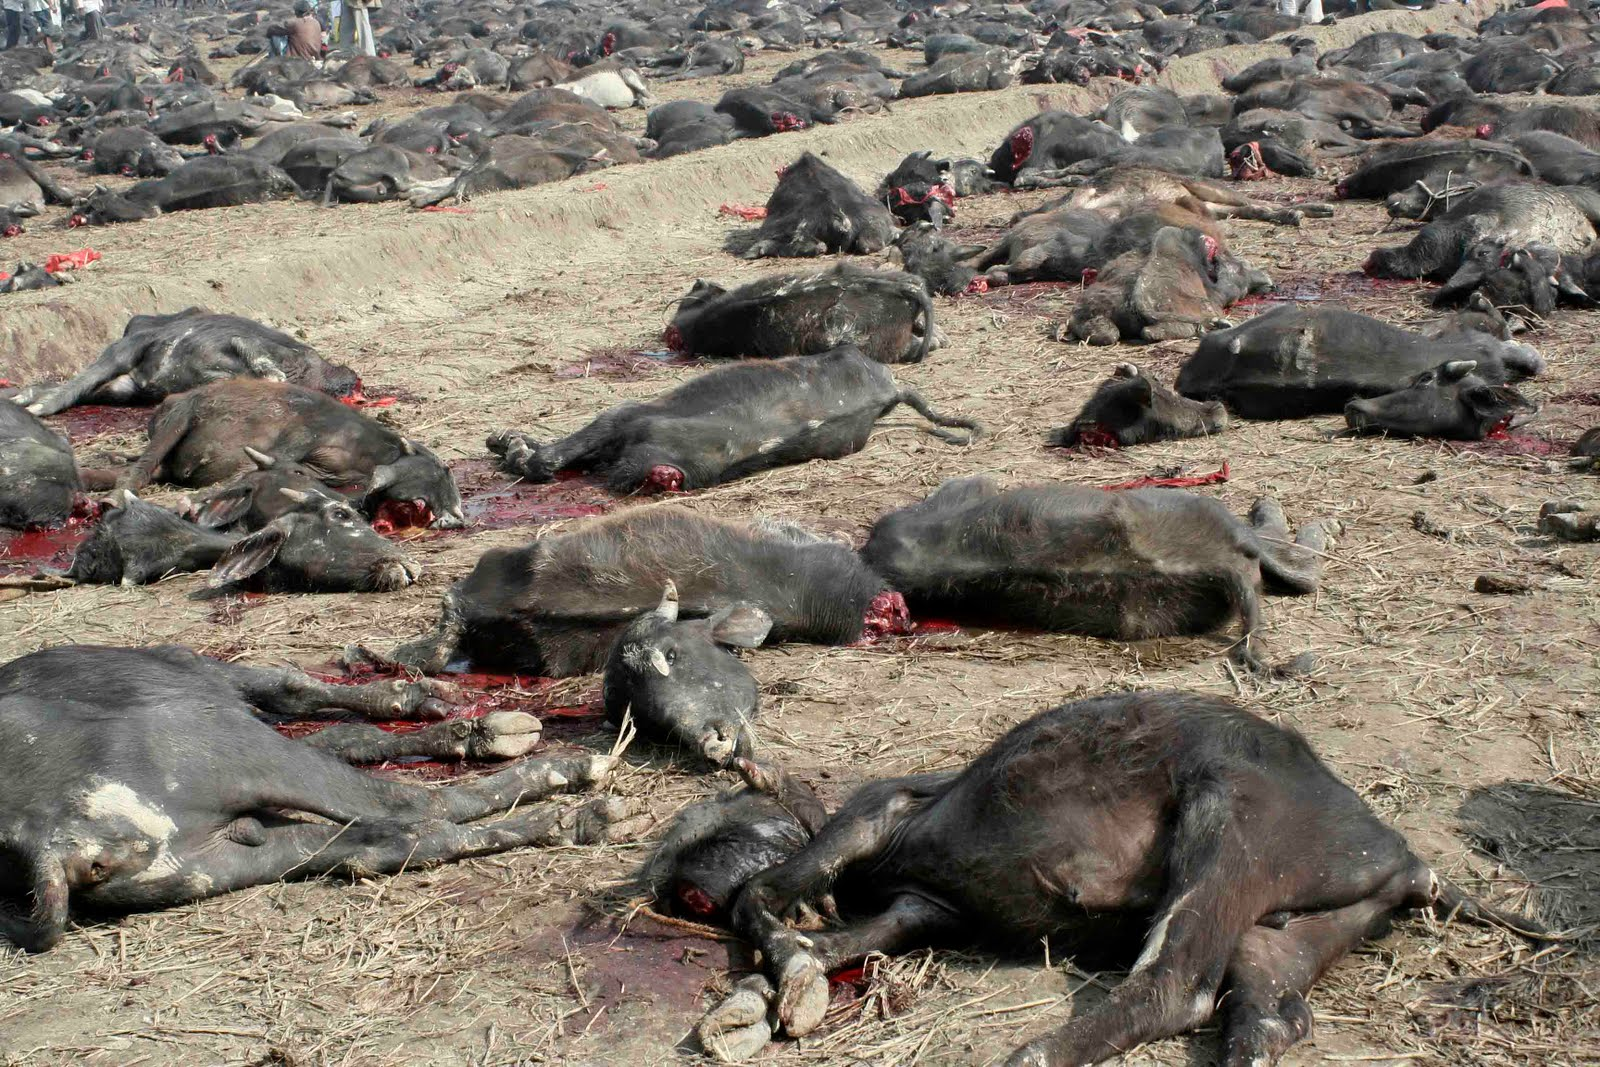 Stop the World's Largest Animal Sacrifice